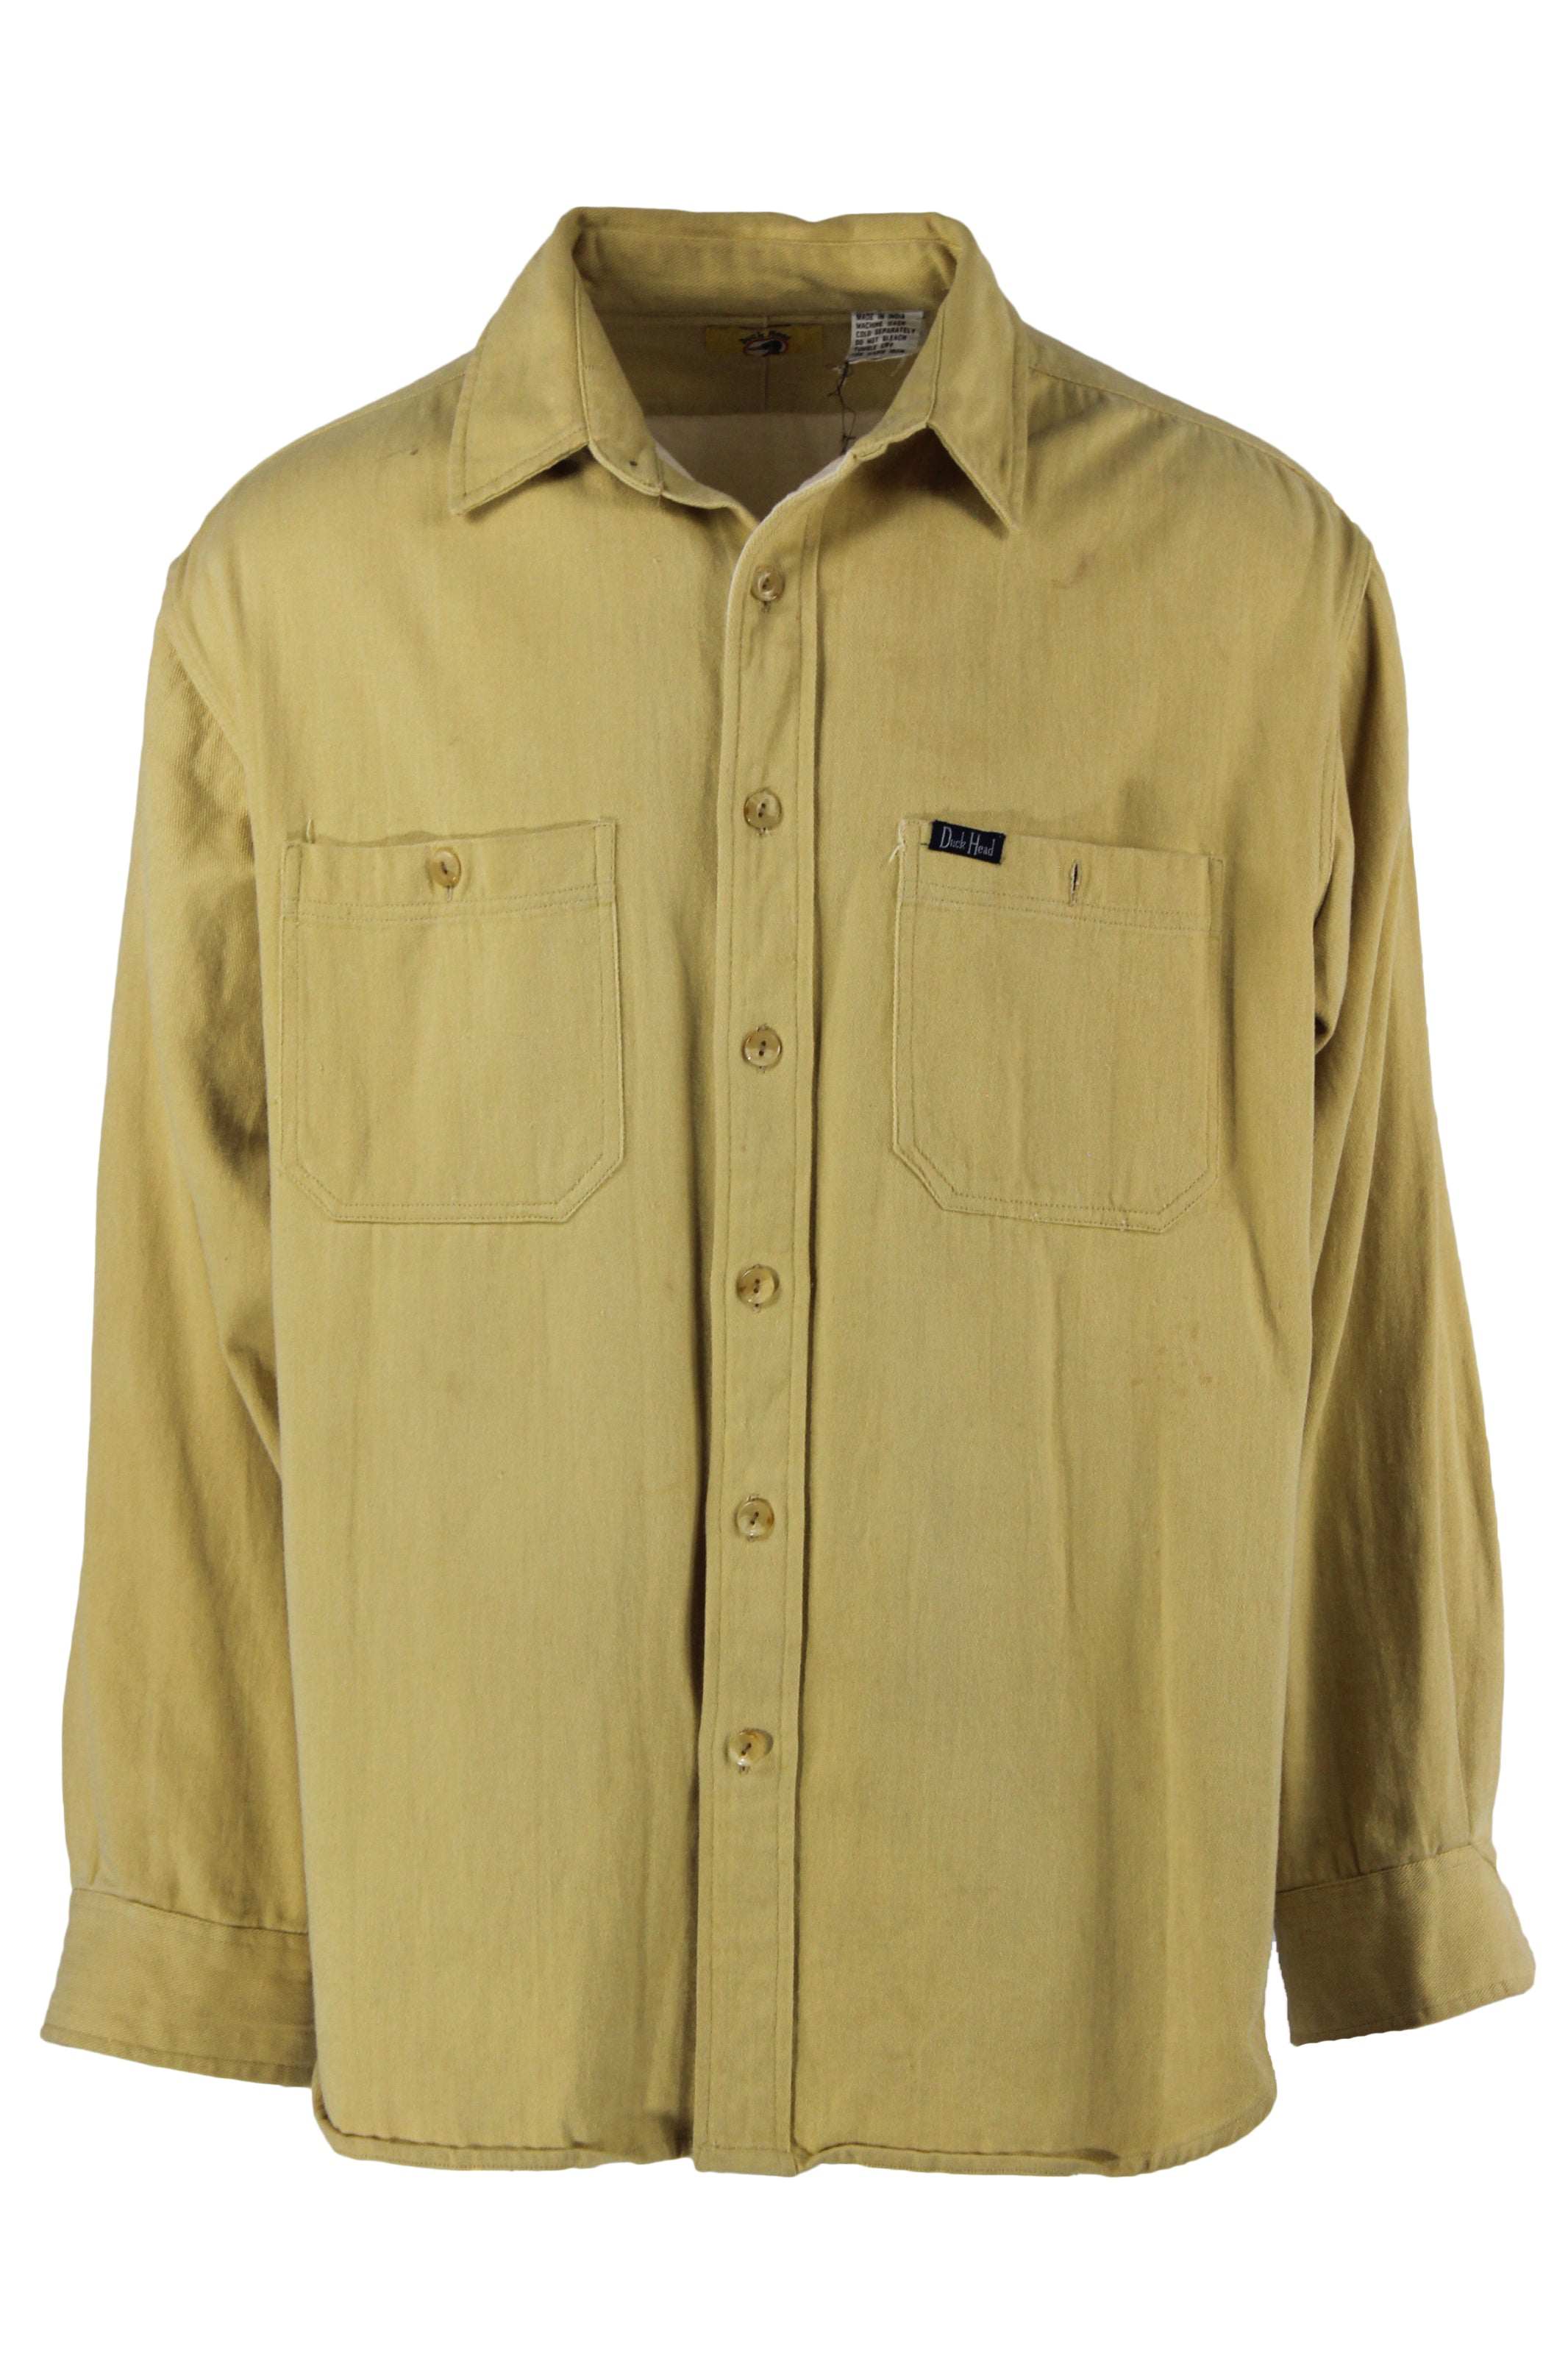 duck head pale lime long sleeve collar top. features a button down closure, two chest pockets, & buttoned sleeve cuffs.